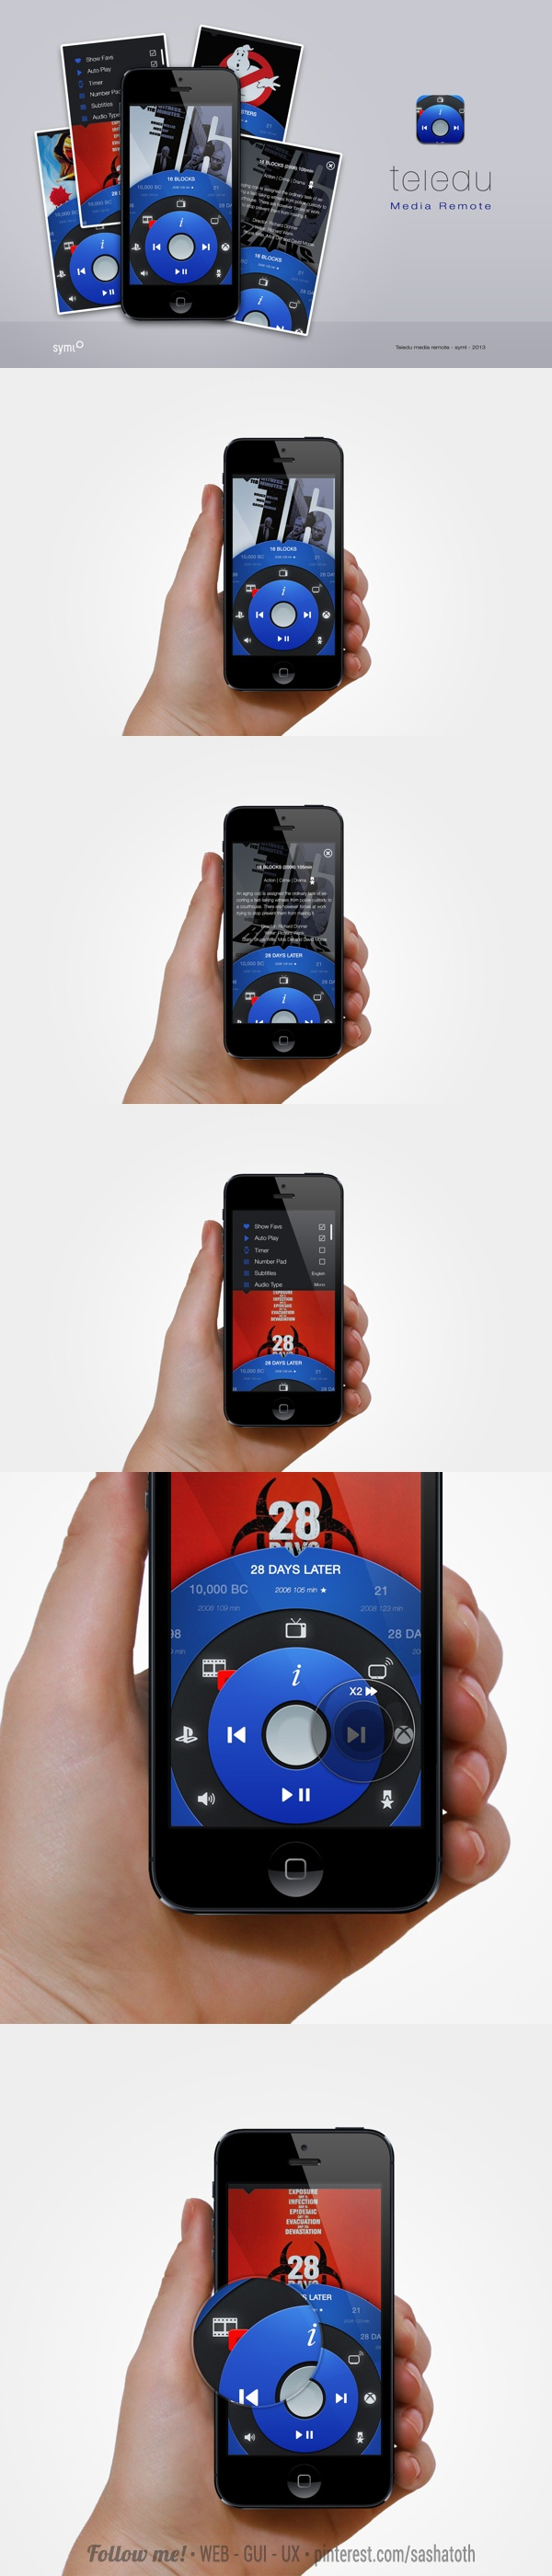 Teledu IOS media remote app concept by Ryan Jones *** #app #iphone #gui #ui #behance